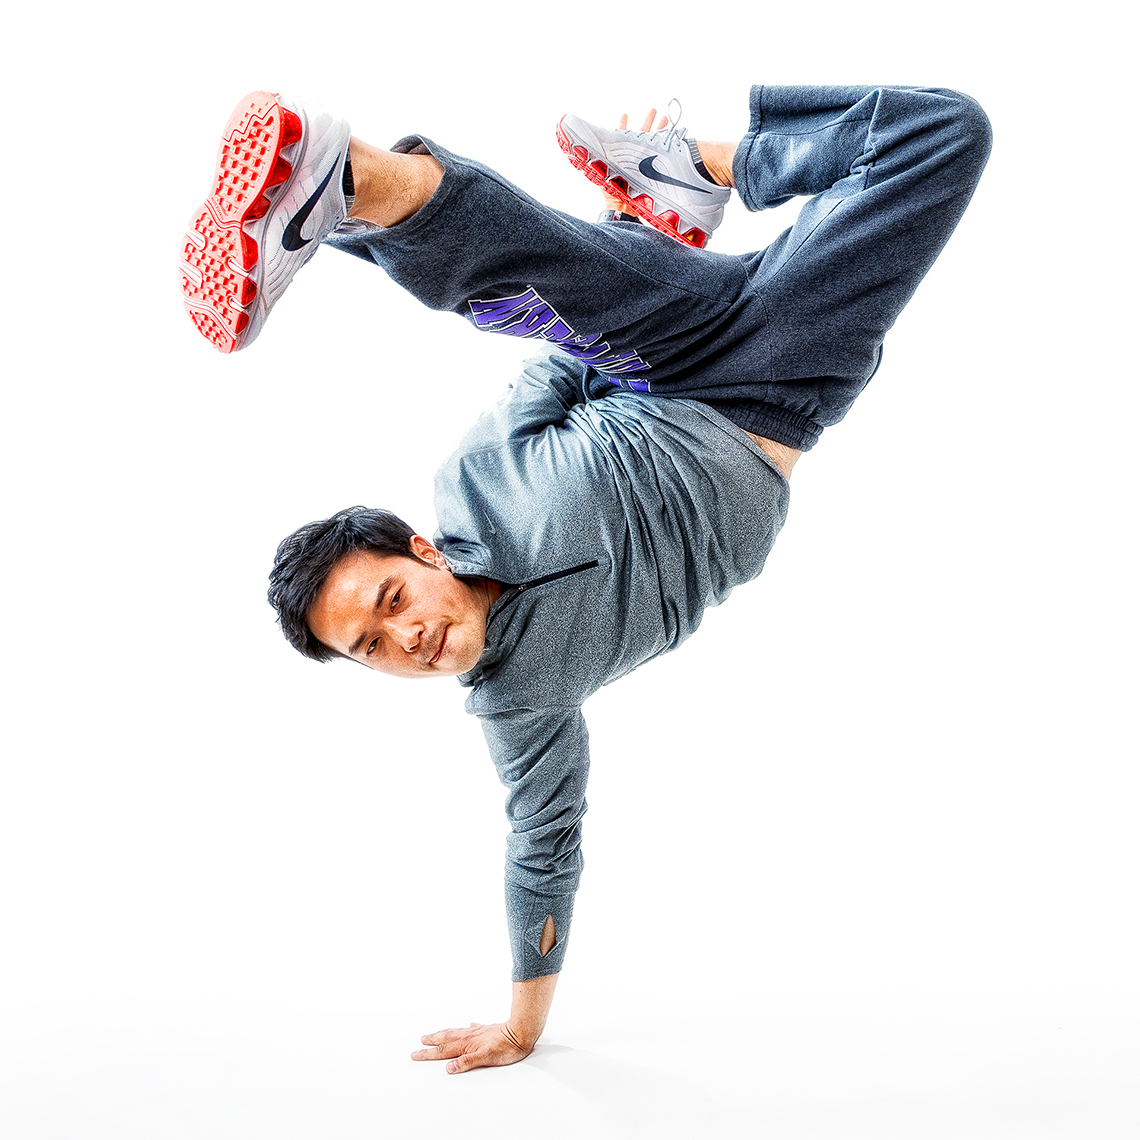 Breakdancer_robgregoryphotography